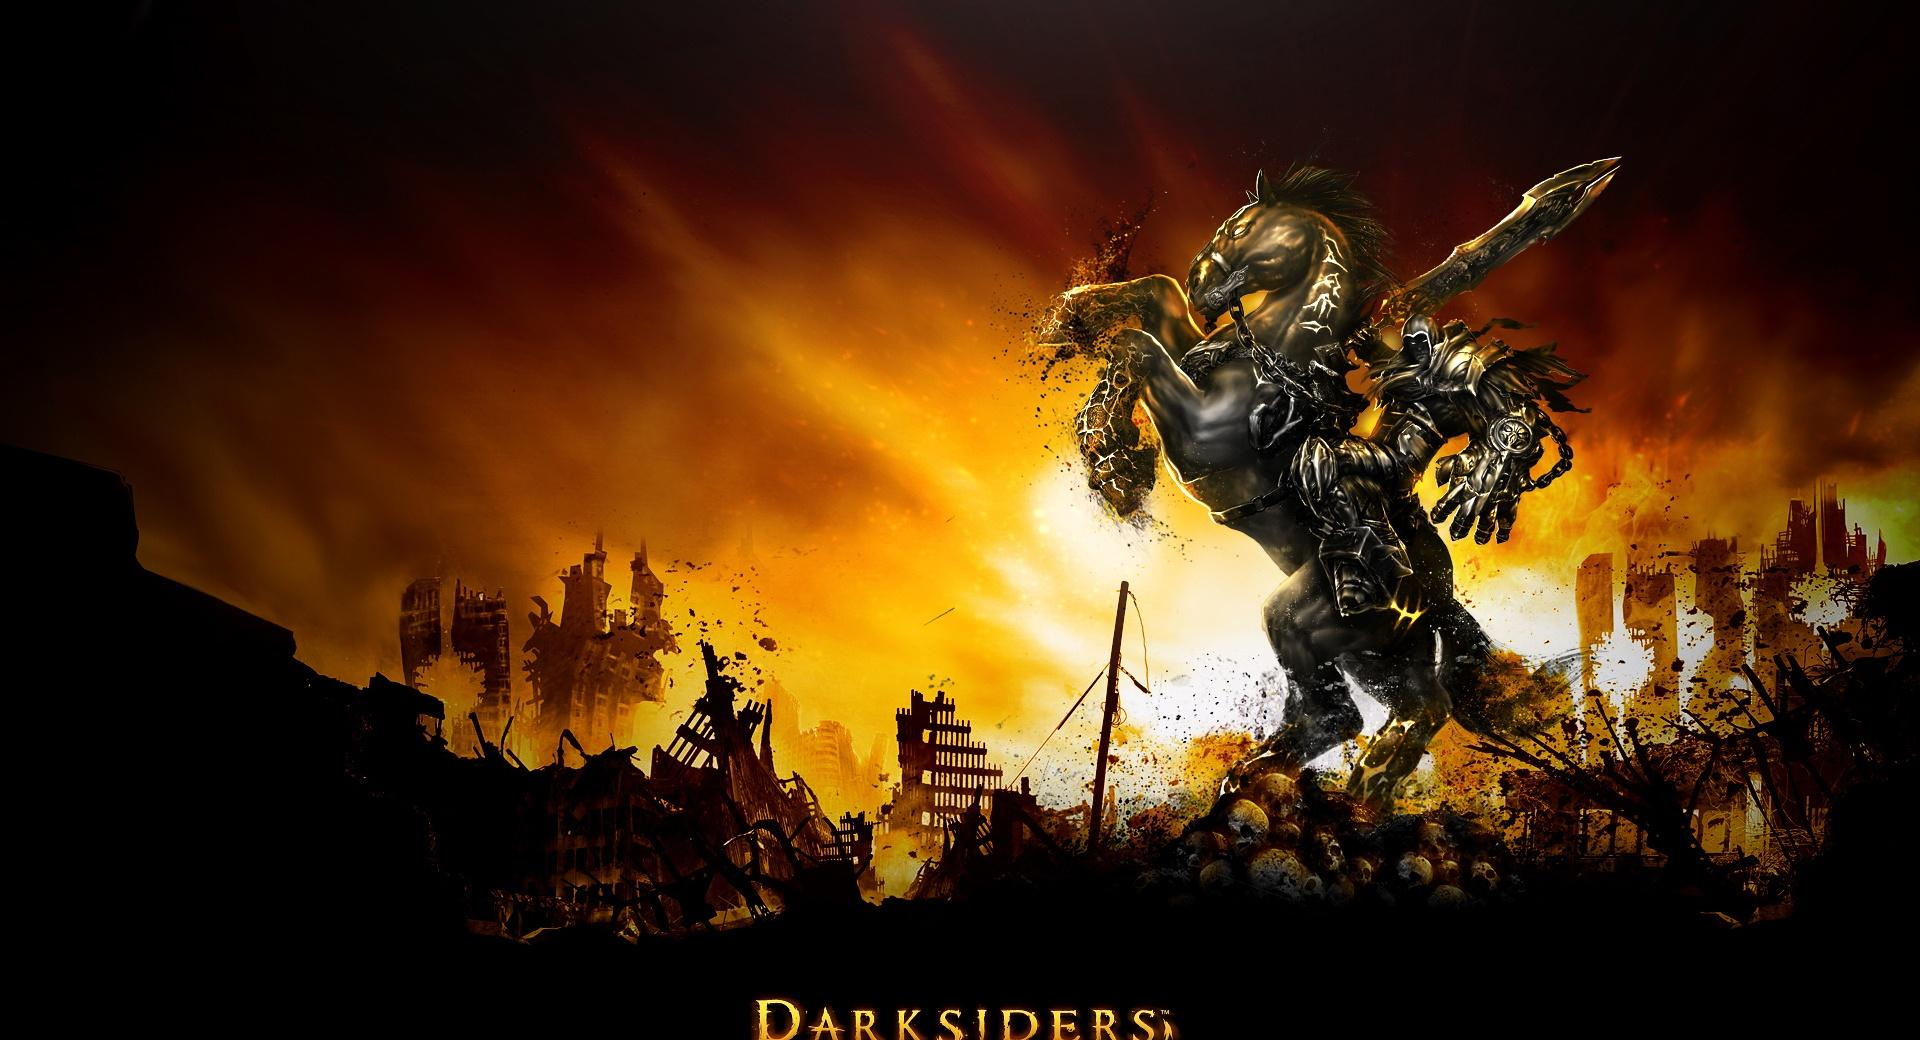 Darksiders Your Last Days wallpapers HD quality